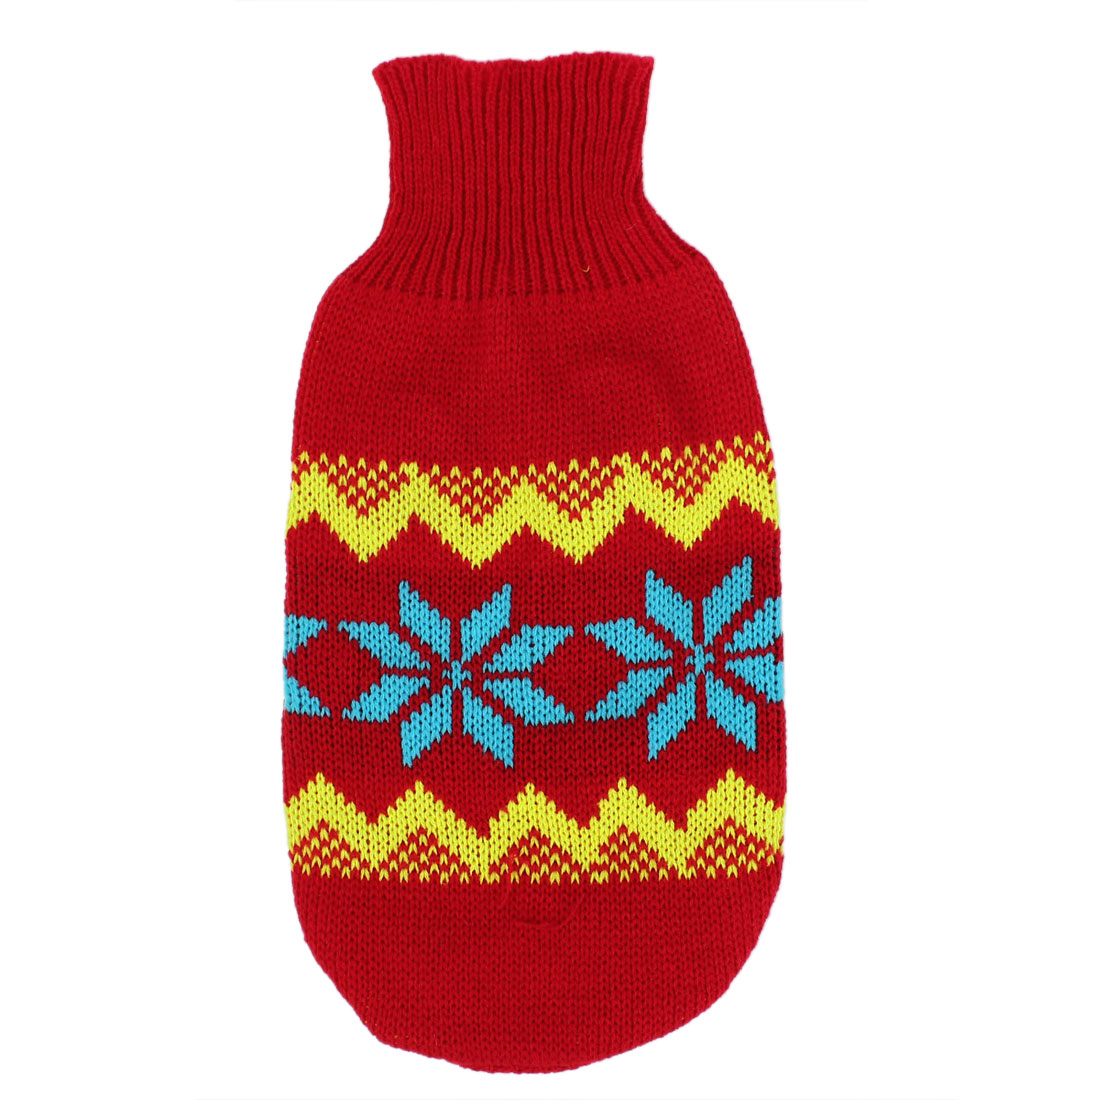 Pet Dog Puppy Ribbed Cuff Knitwear Turtleneck Apparel Sweater Blue Red Yellow Size M